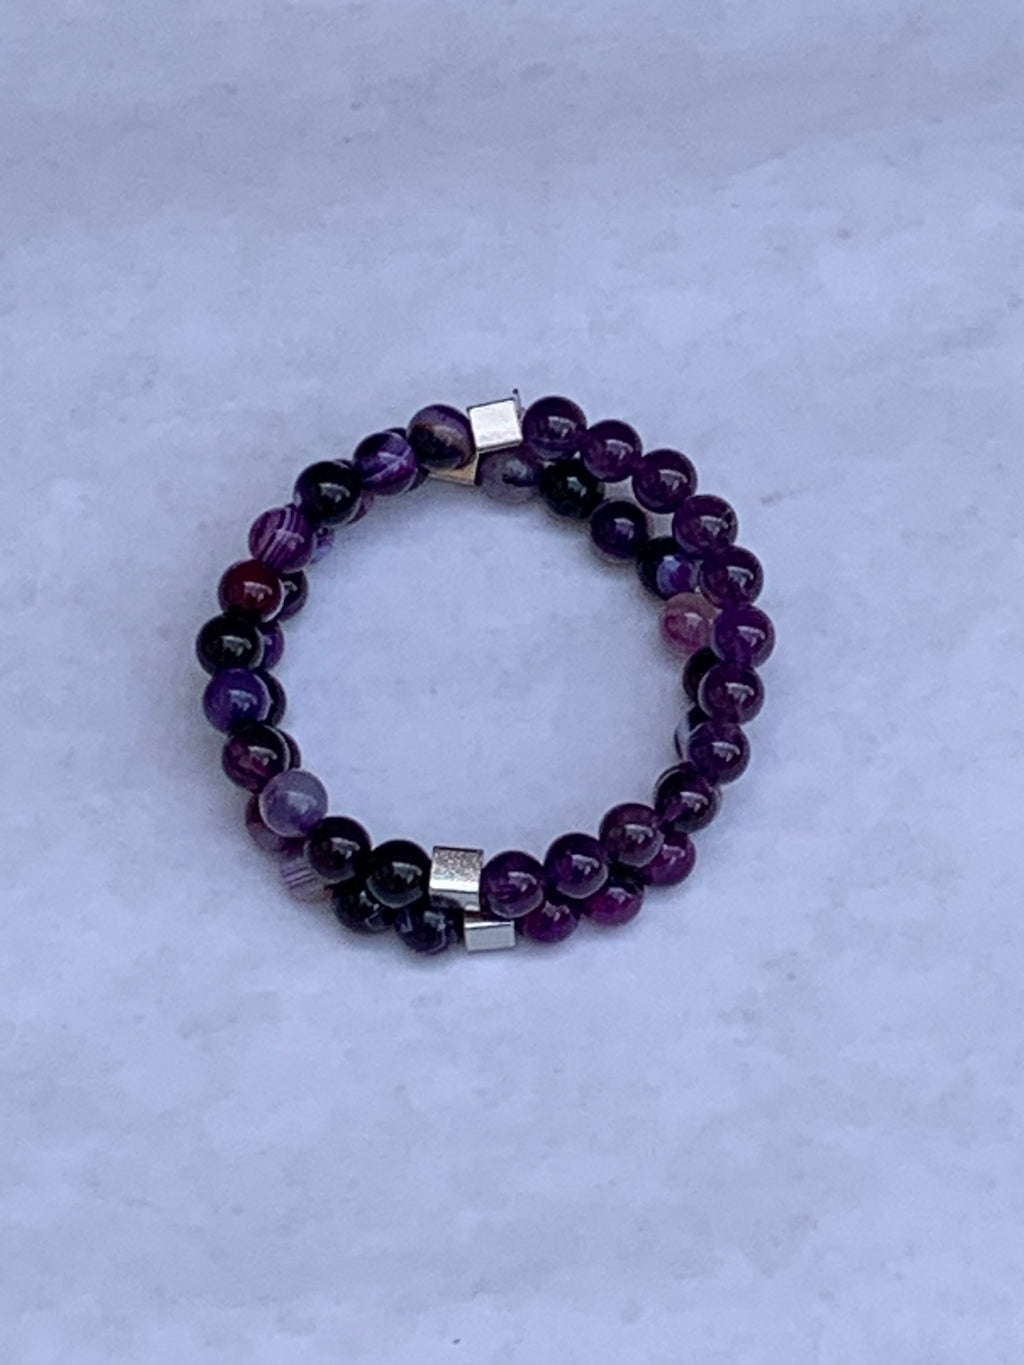 Charity Gemstone Bracelet - Banded Purple Agate